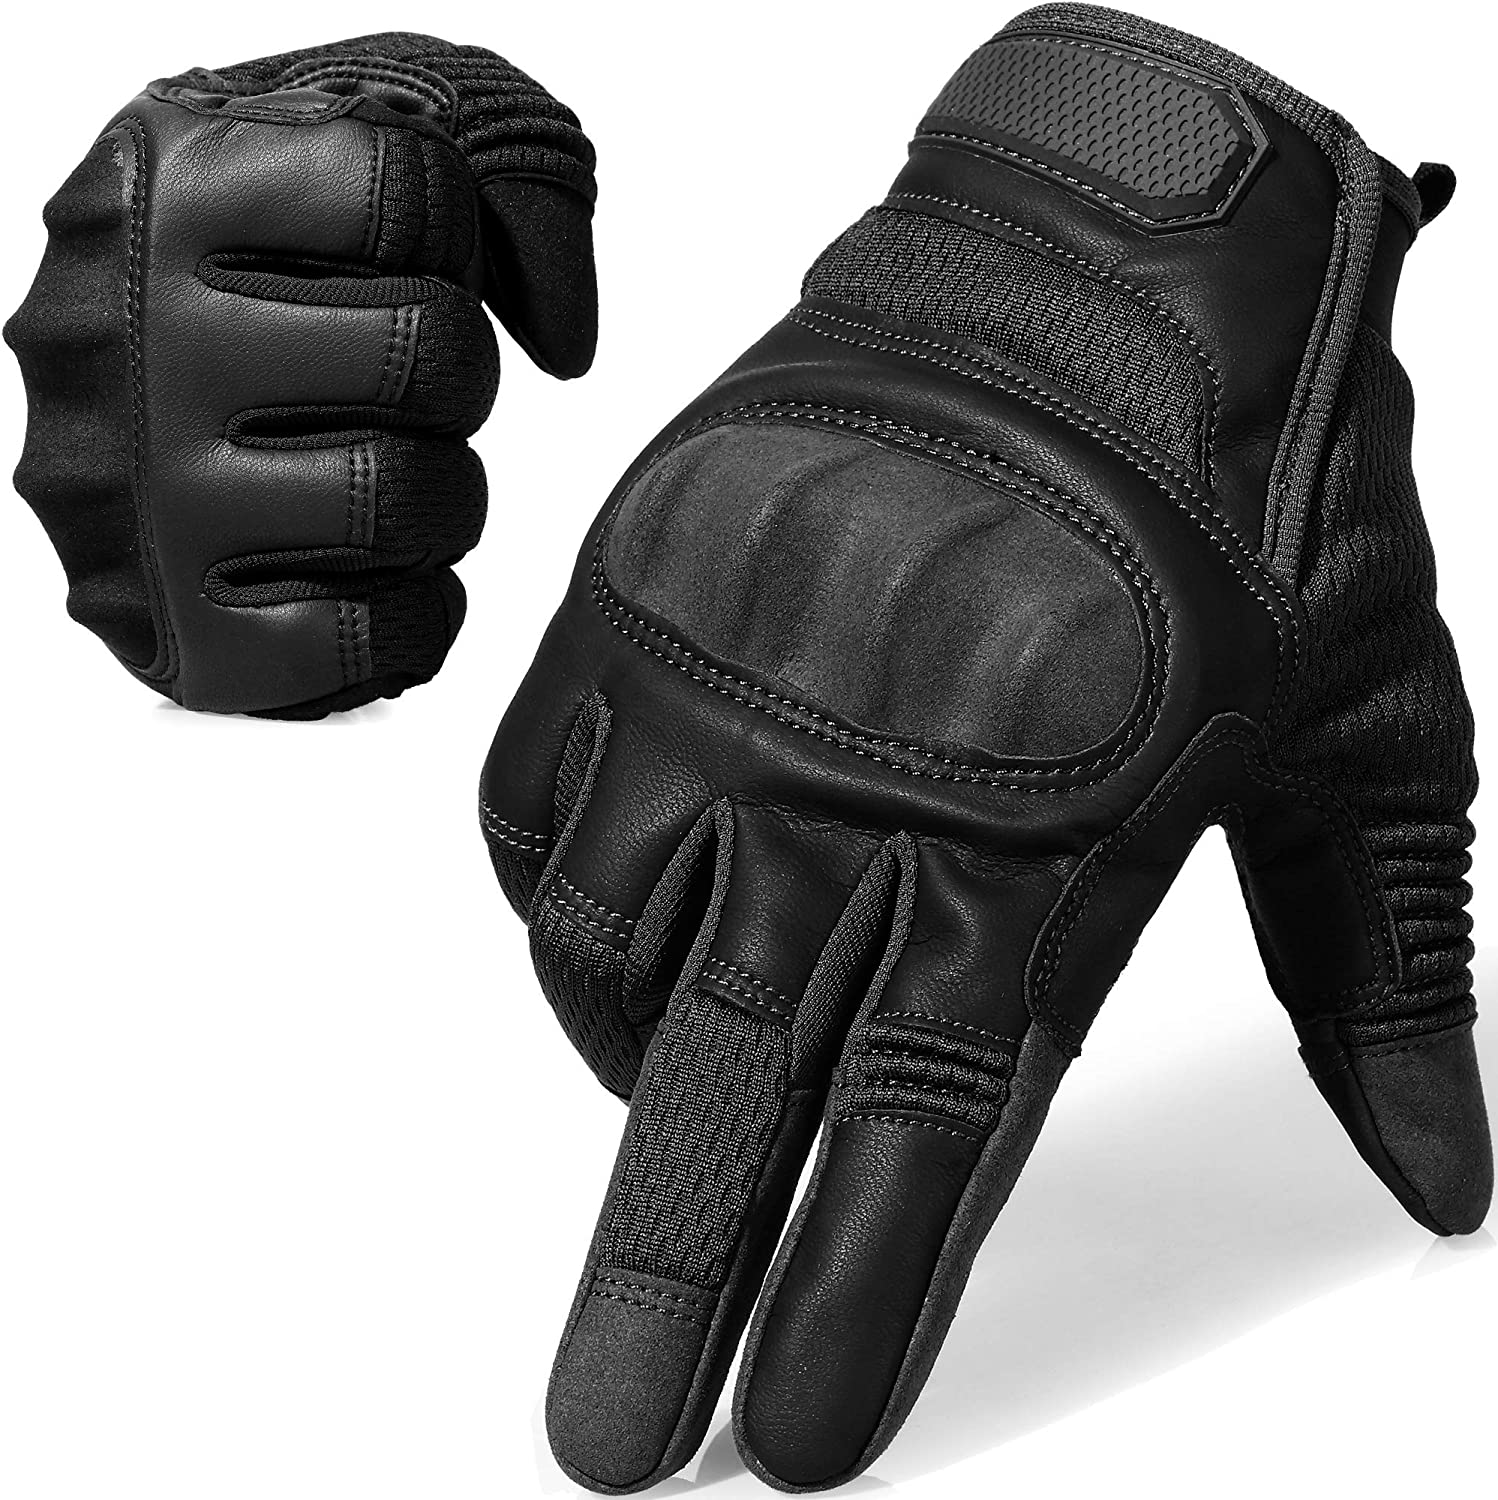 AXBXCX Touch Screen Full Finger Gloves for Motorcycles Cycling Motorbike ATV Bike Camping Climbing Hiking Work Outdoor Sports Men Women Black S